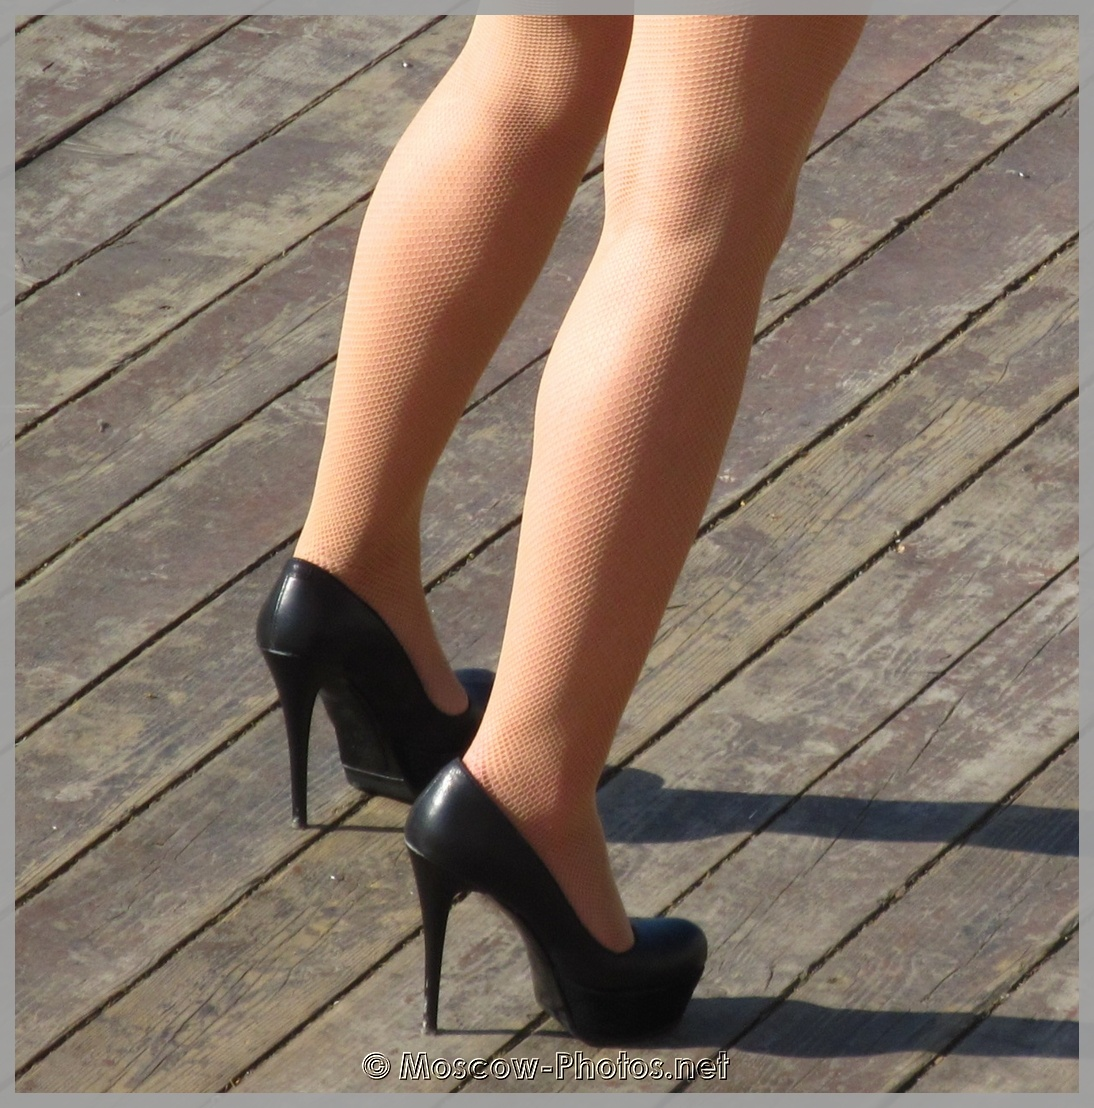 Black high heeled shoes